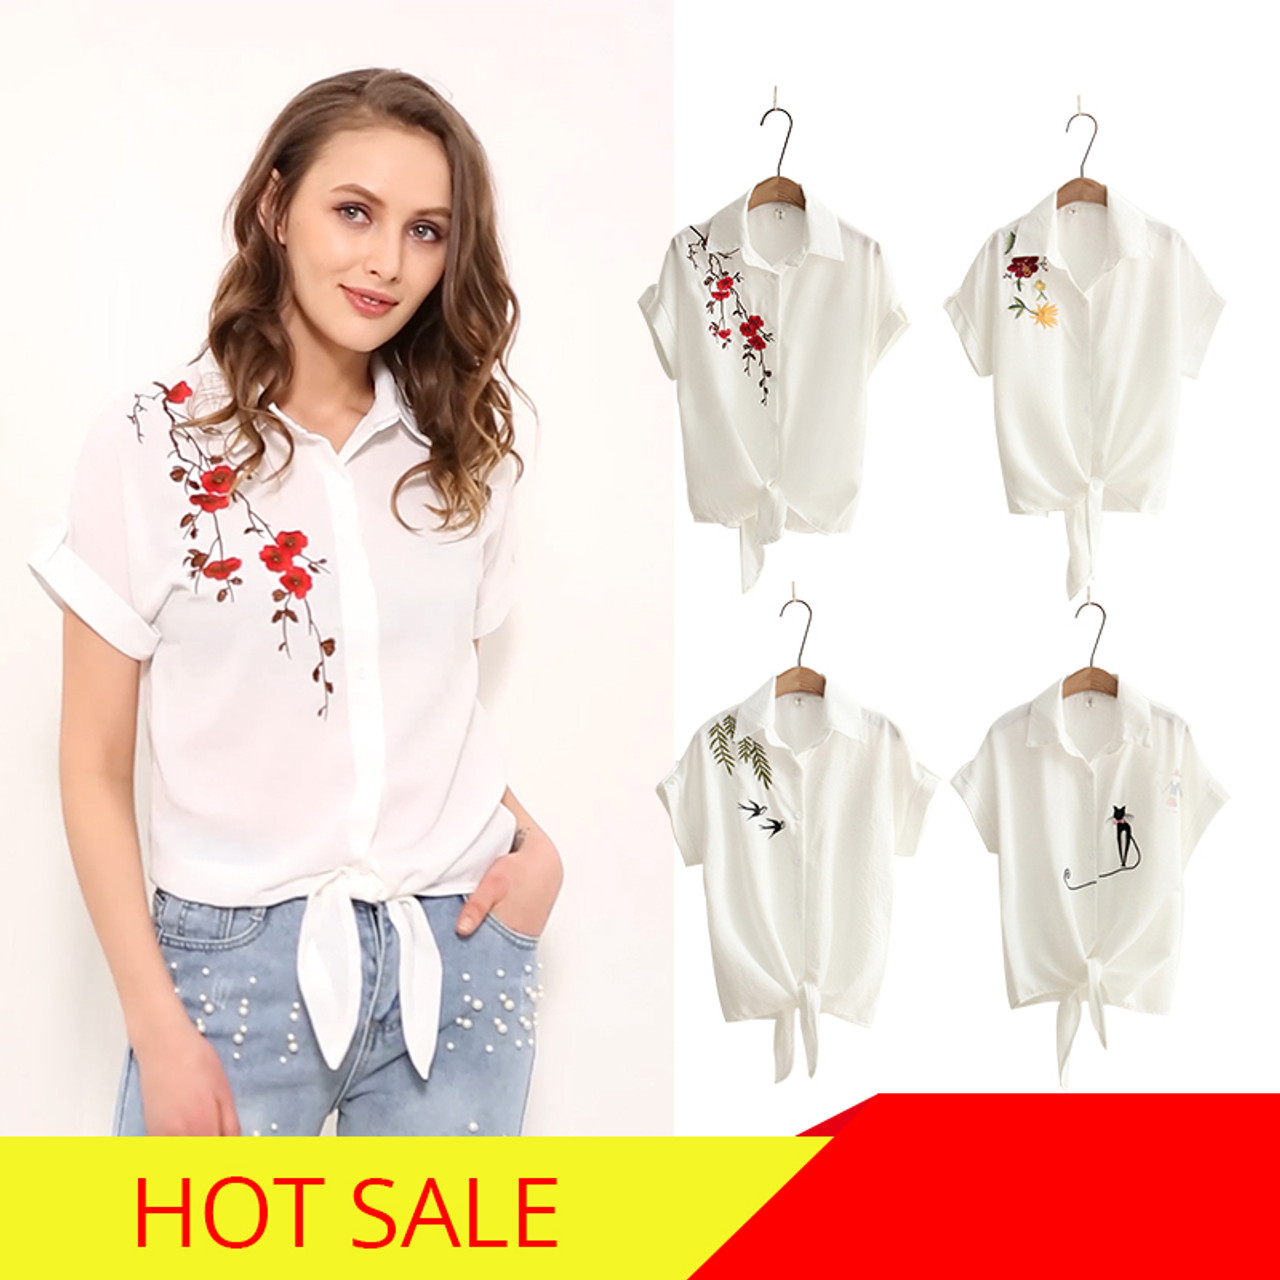 6af349cdae956 ... 2018 Top Summer Women Casual Tops Short Sleeve Embroidery White Top  Blouses Shirts Sexy Kimono Loose ...